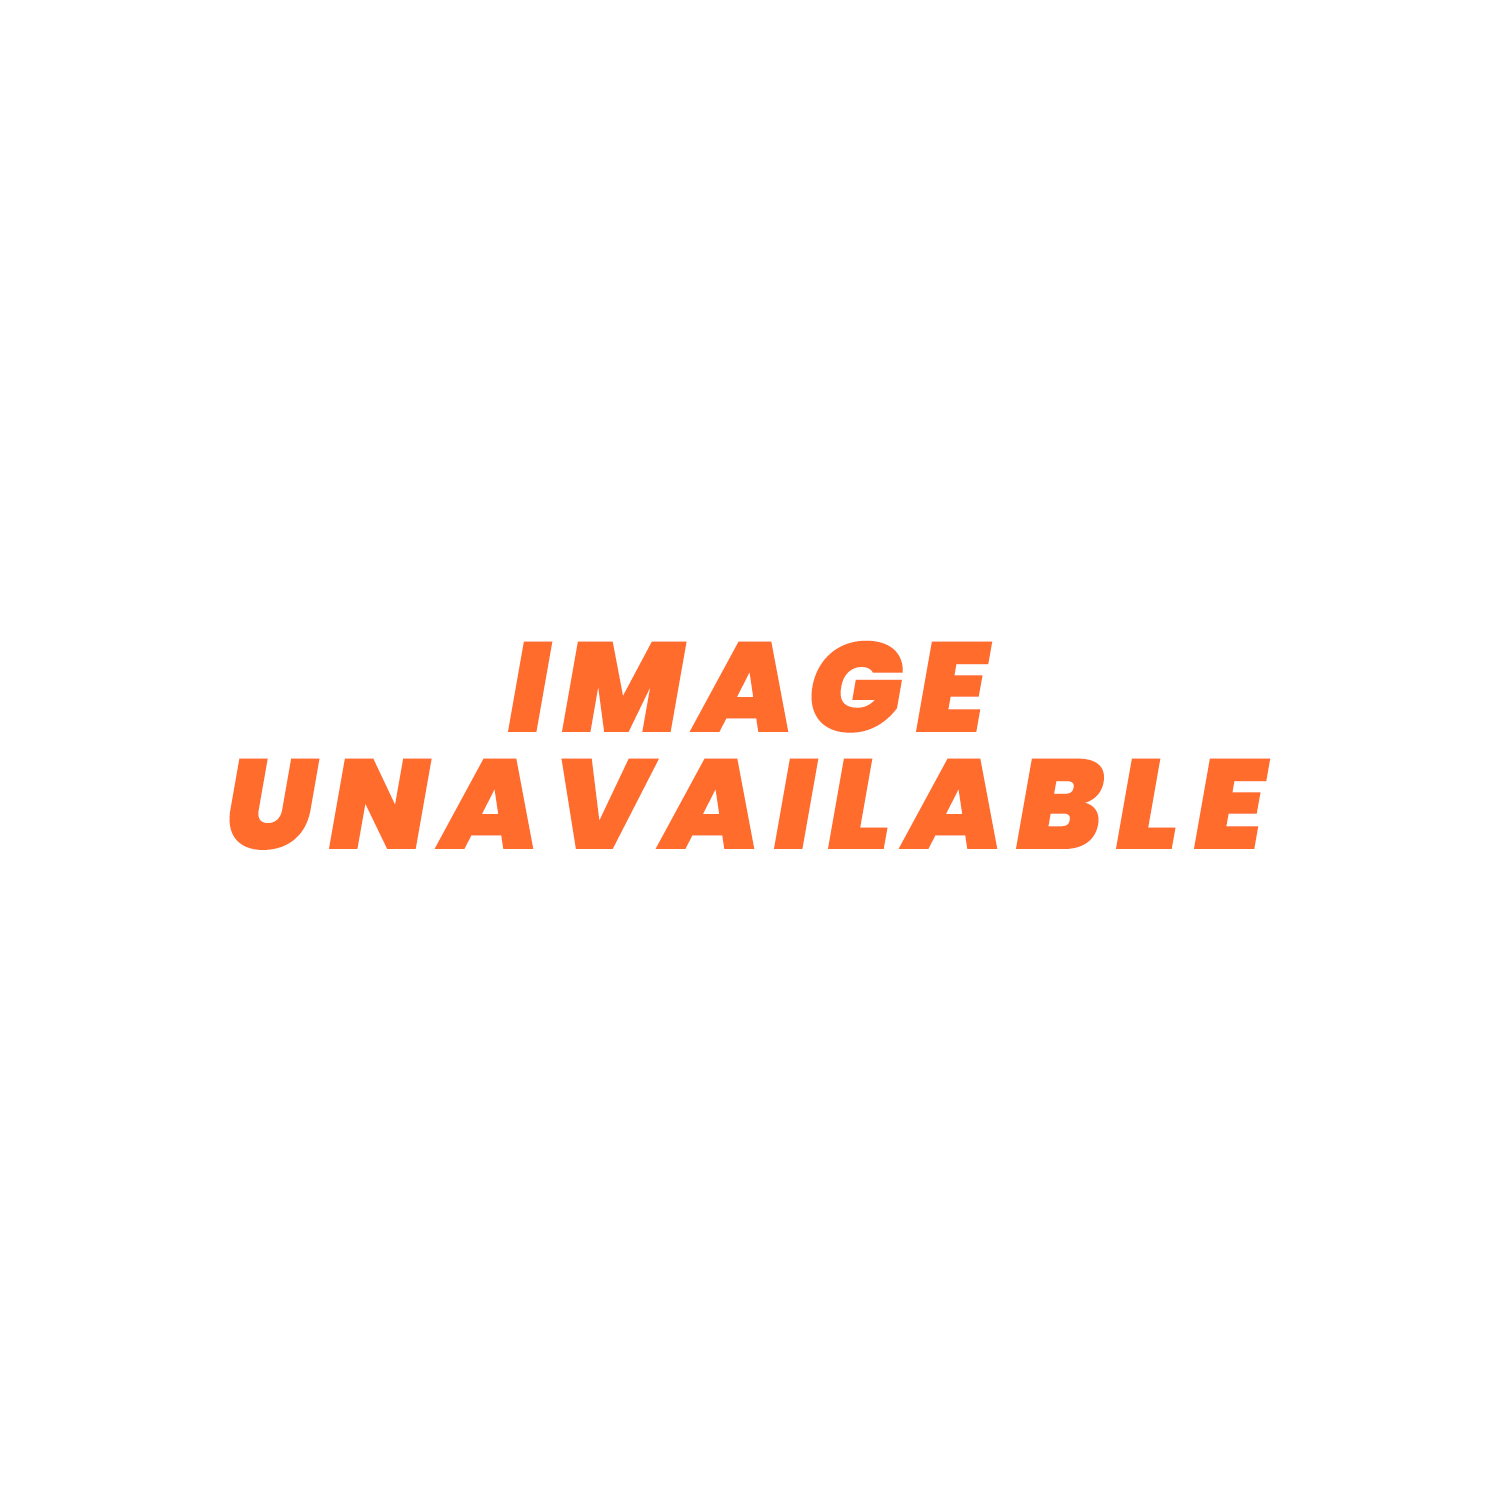 "SPAL Radiator Fan - 7.5"" (190mm) Pull VA14-AP11/C-34A 431cfm"